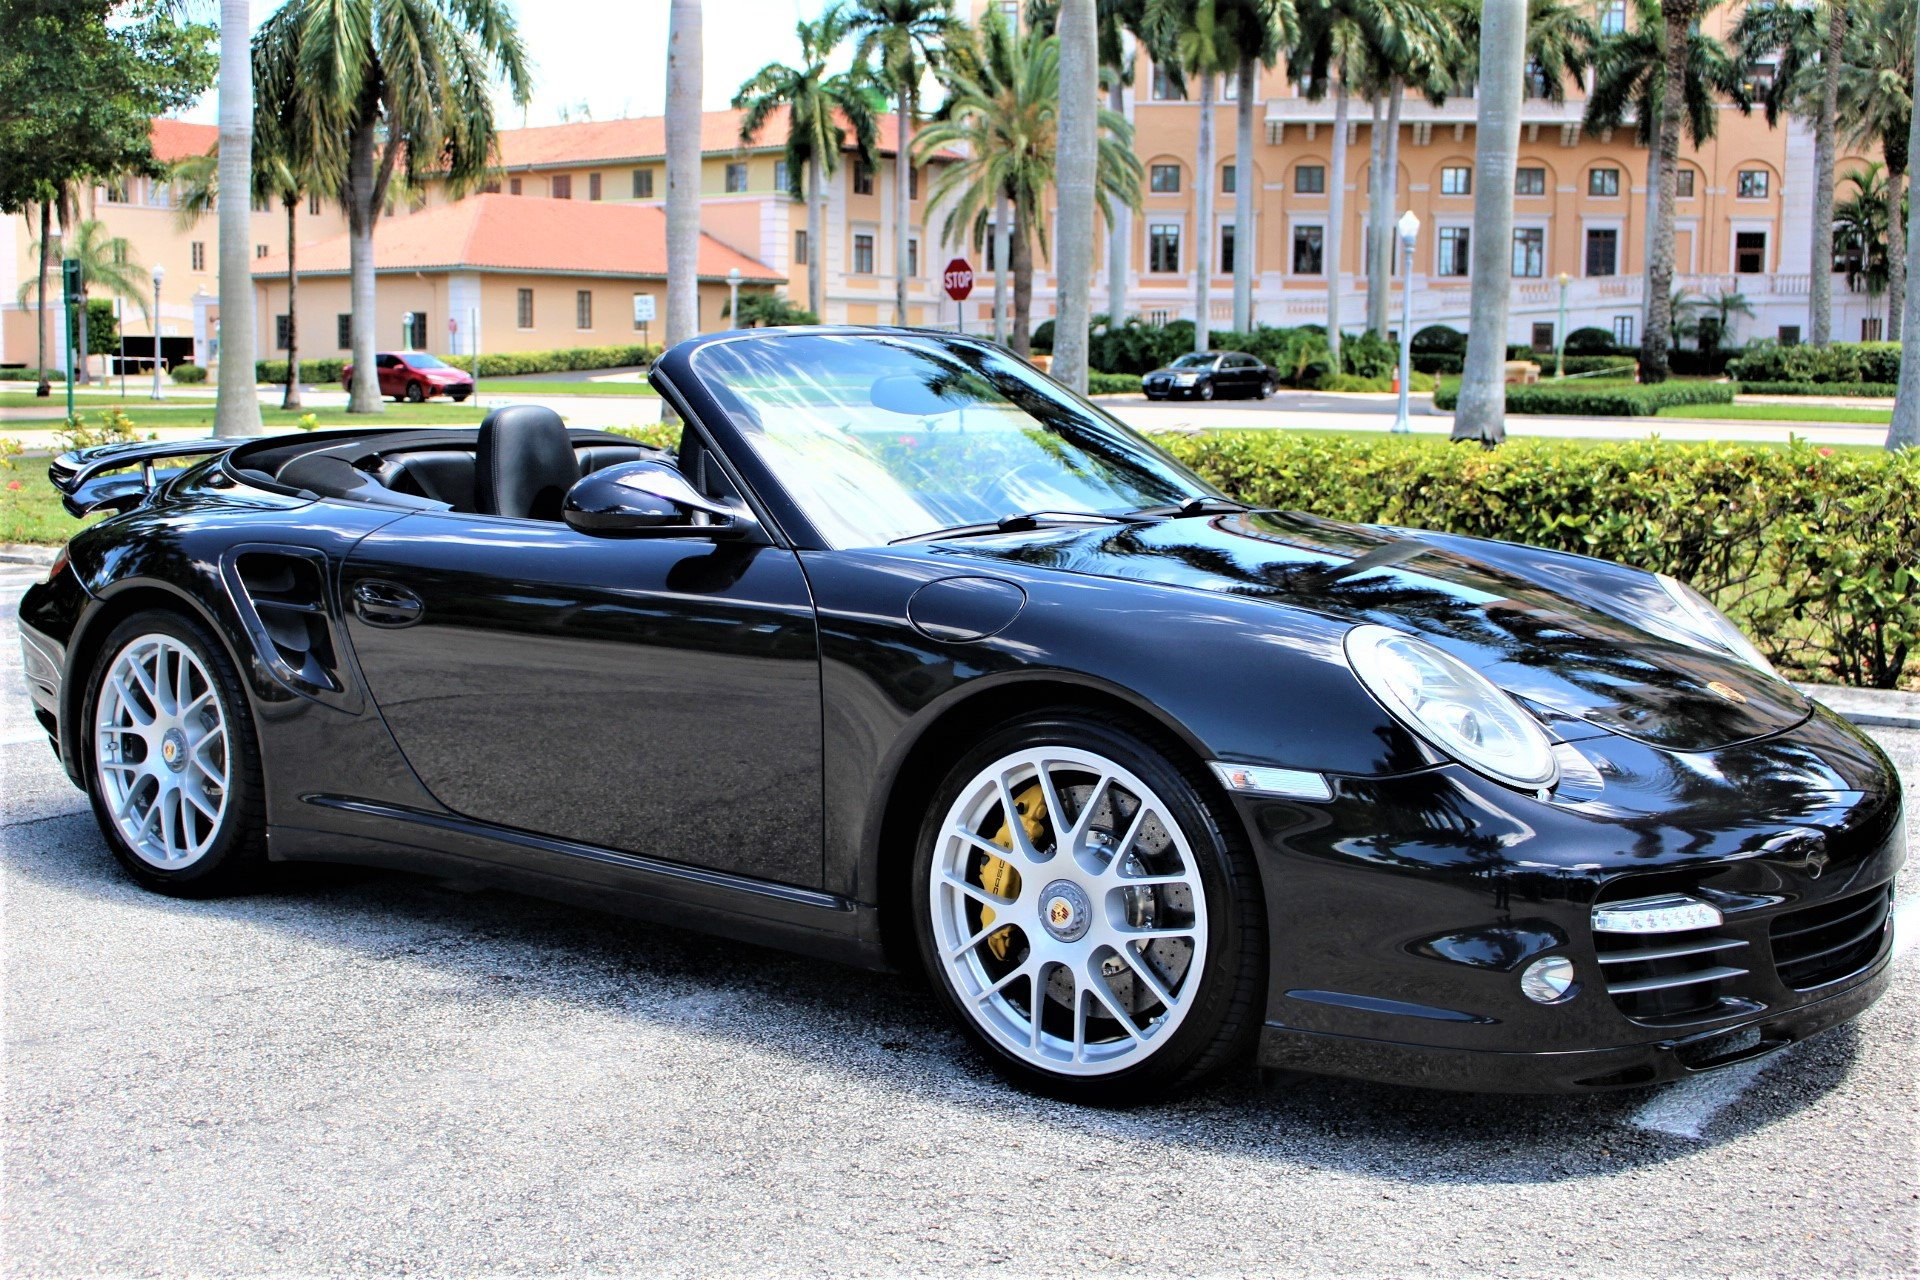 Used 2011 Porsche 911 Turbo S for sale Sold at The Gables Sports Cars in Miami FL 33146 3